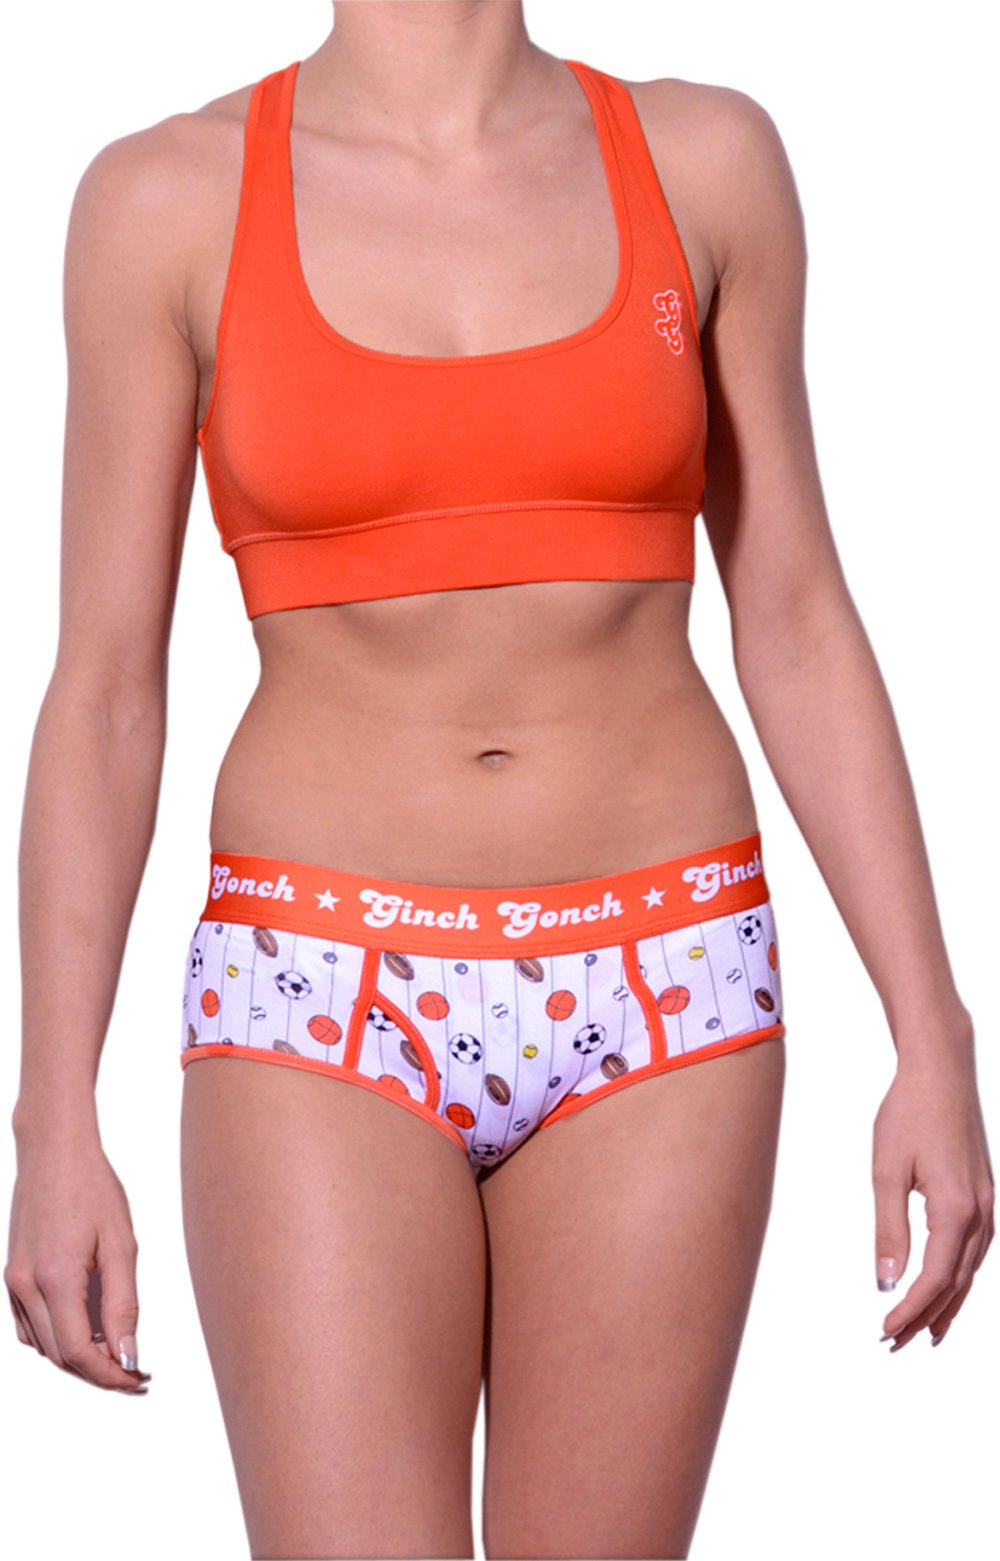 GG Ginch Gonch Hardball boy cut Brief - women's Underwear - pin striped white fabric with basketballs, footballs, soccer balls, tennis balls, and baseballs. Orange trim and y front with orange printed waistband front